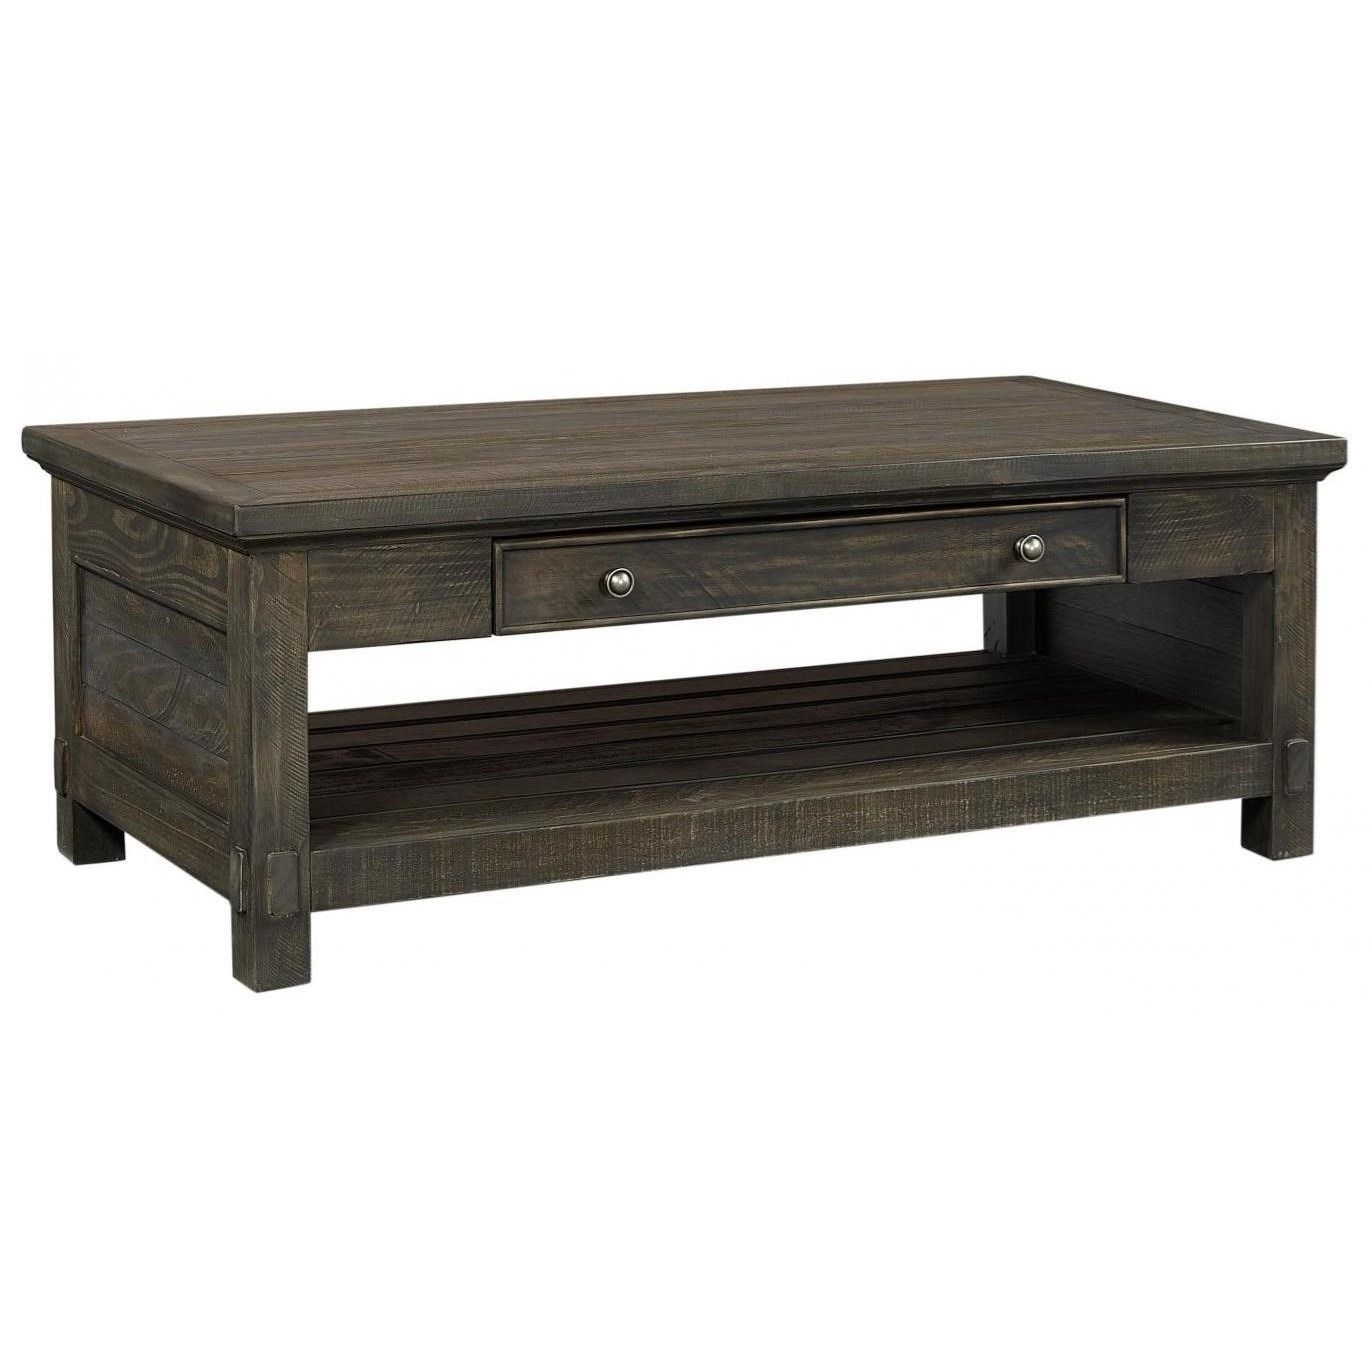 Suffolk Cocktail Table by Aspenhome at Walker's Furniture